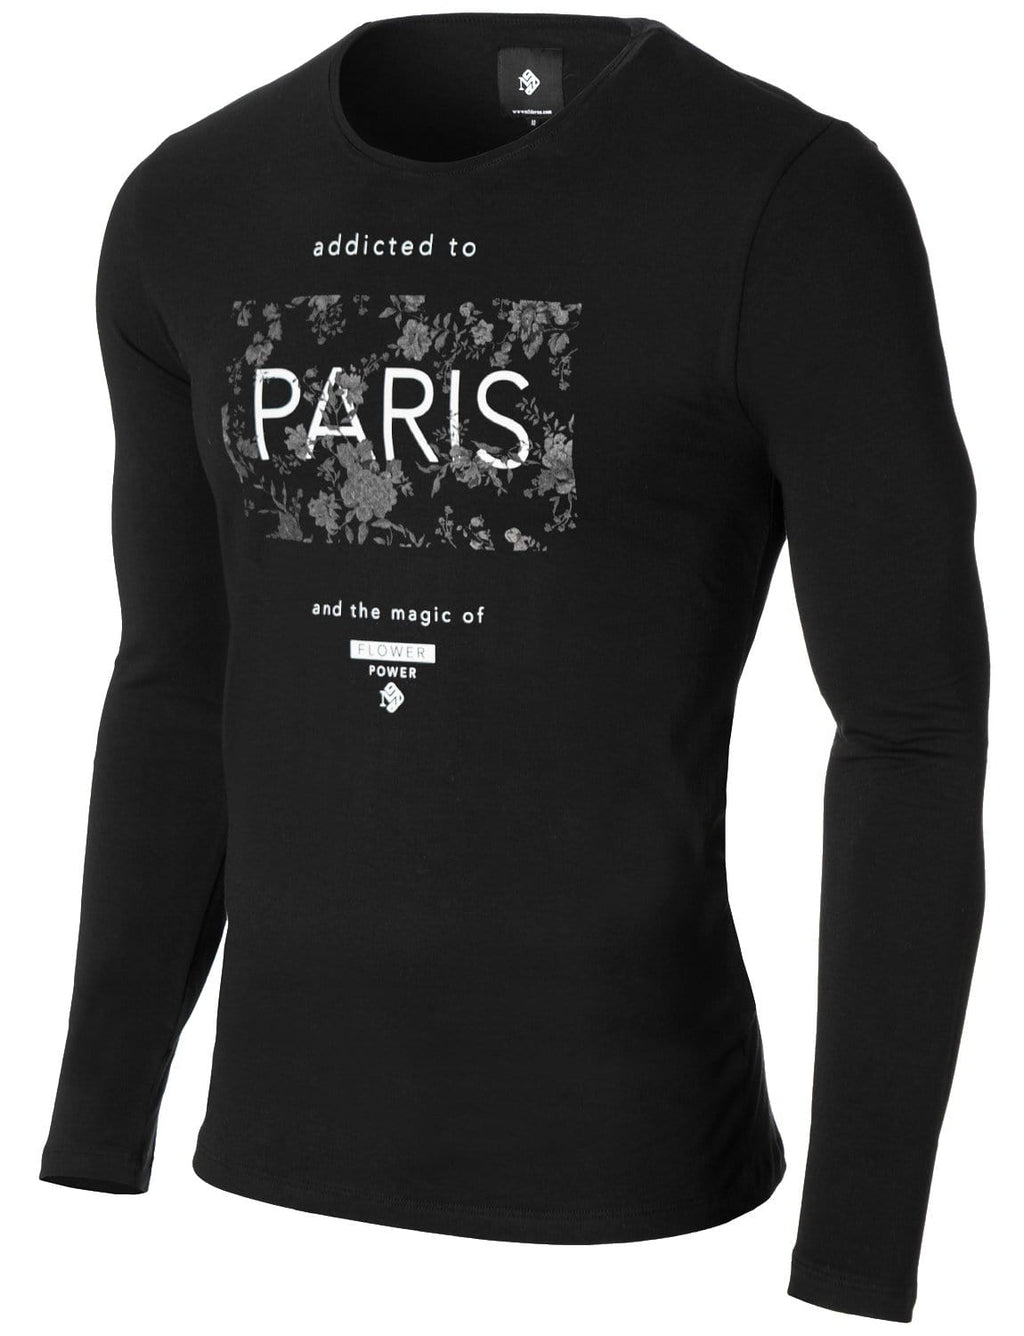 Mens Long Sleeve Paris Print T-shirt Black